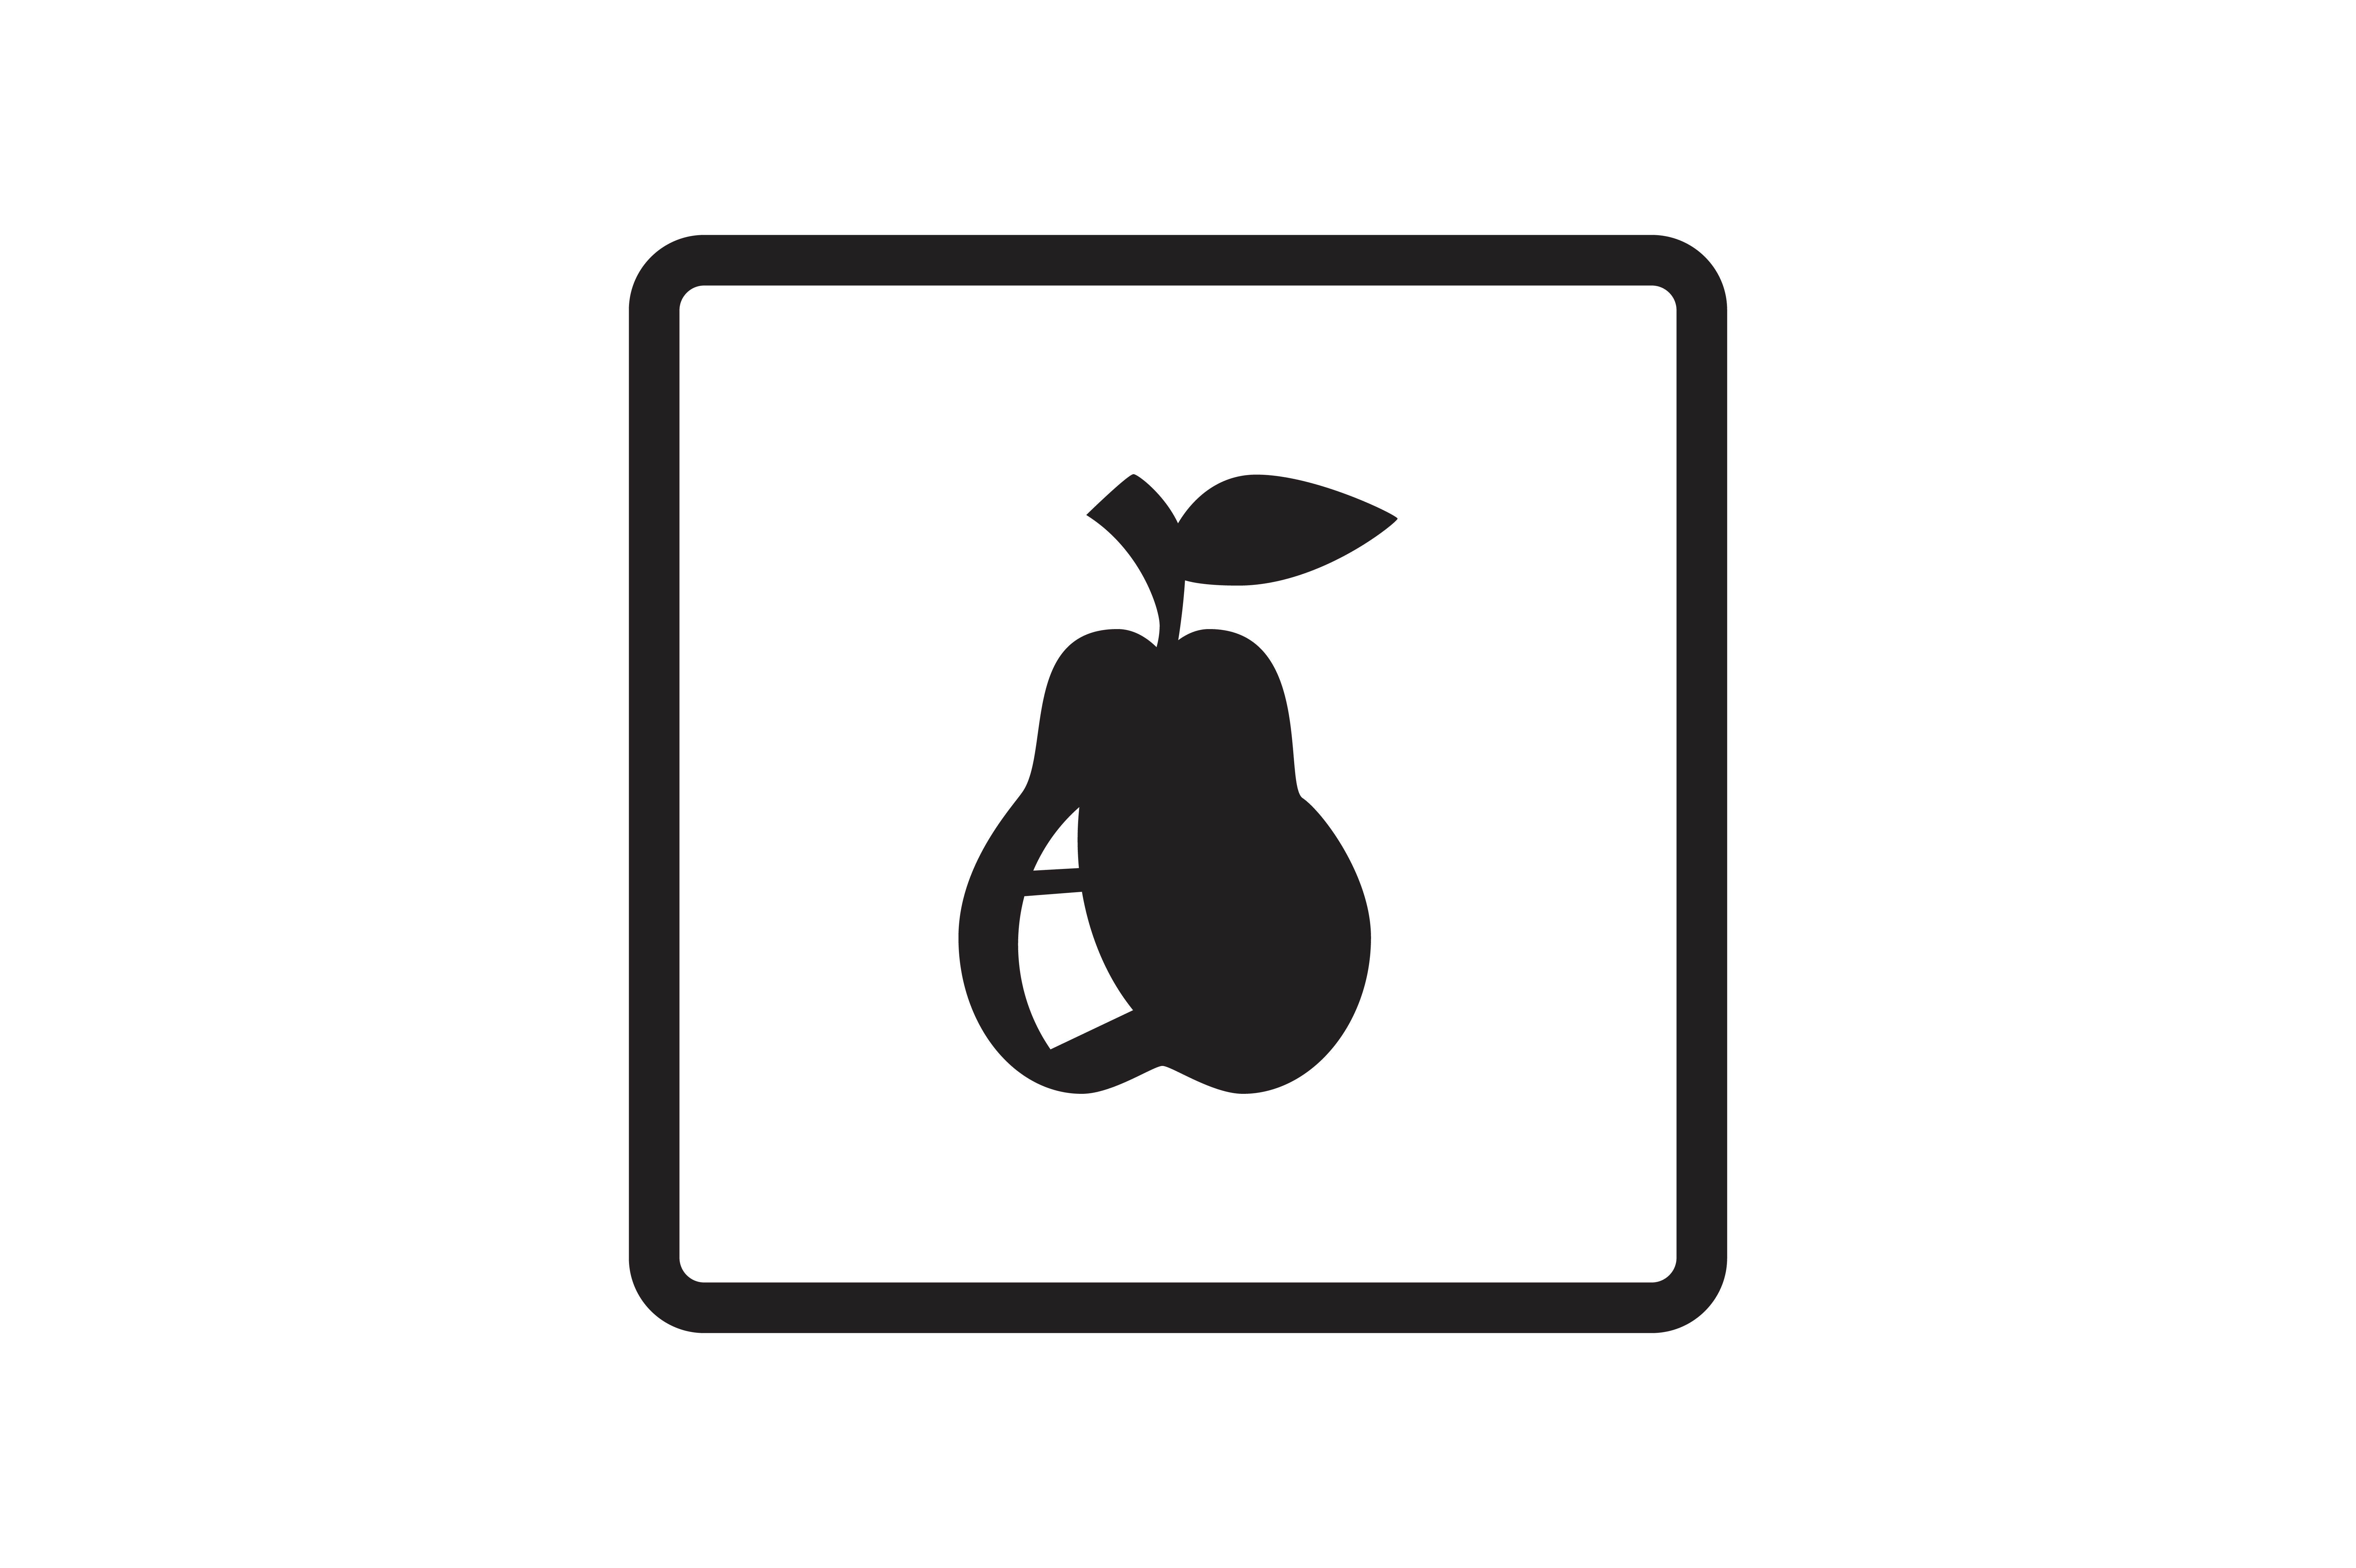 Download Free Food Icon Graphic By Zafreeloicon Creative Fabrica for Cricut Explore, Silhouette and other cutting machines.